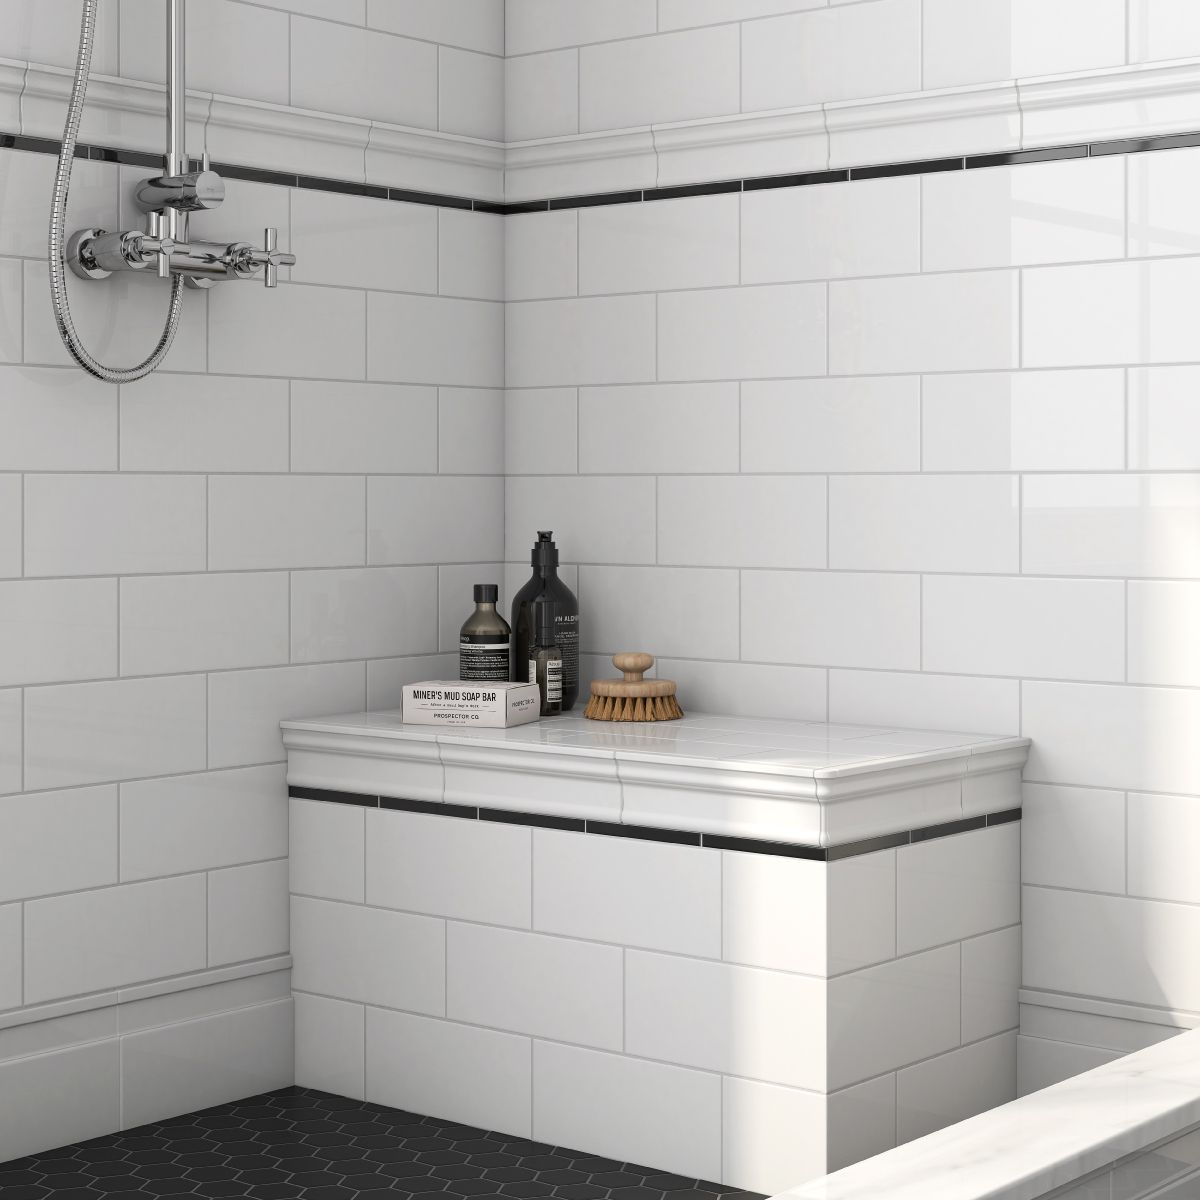 Decorative Accents Collection Ceramic Wall Tile Accents And Trims